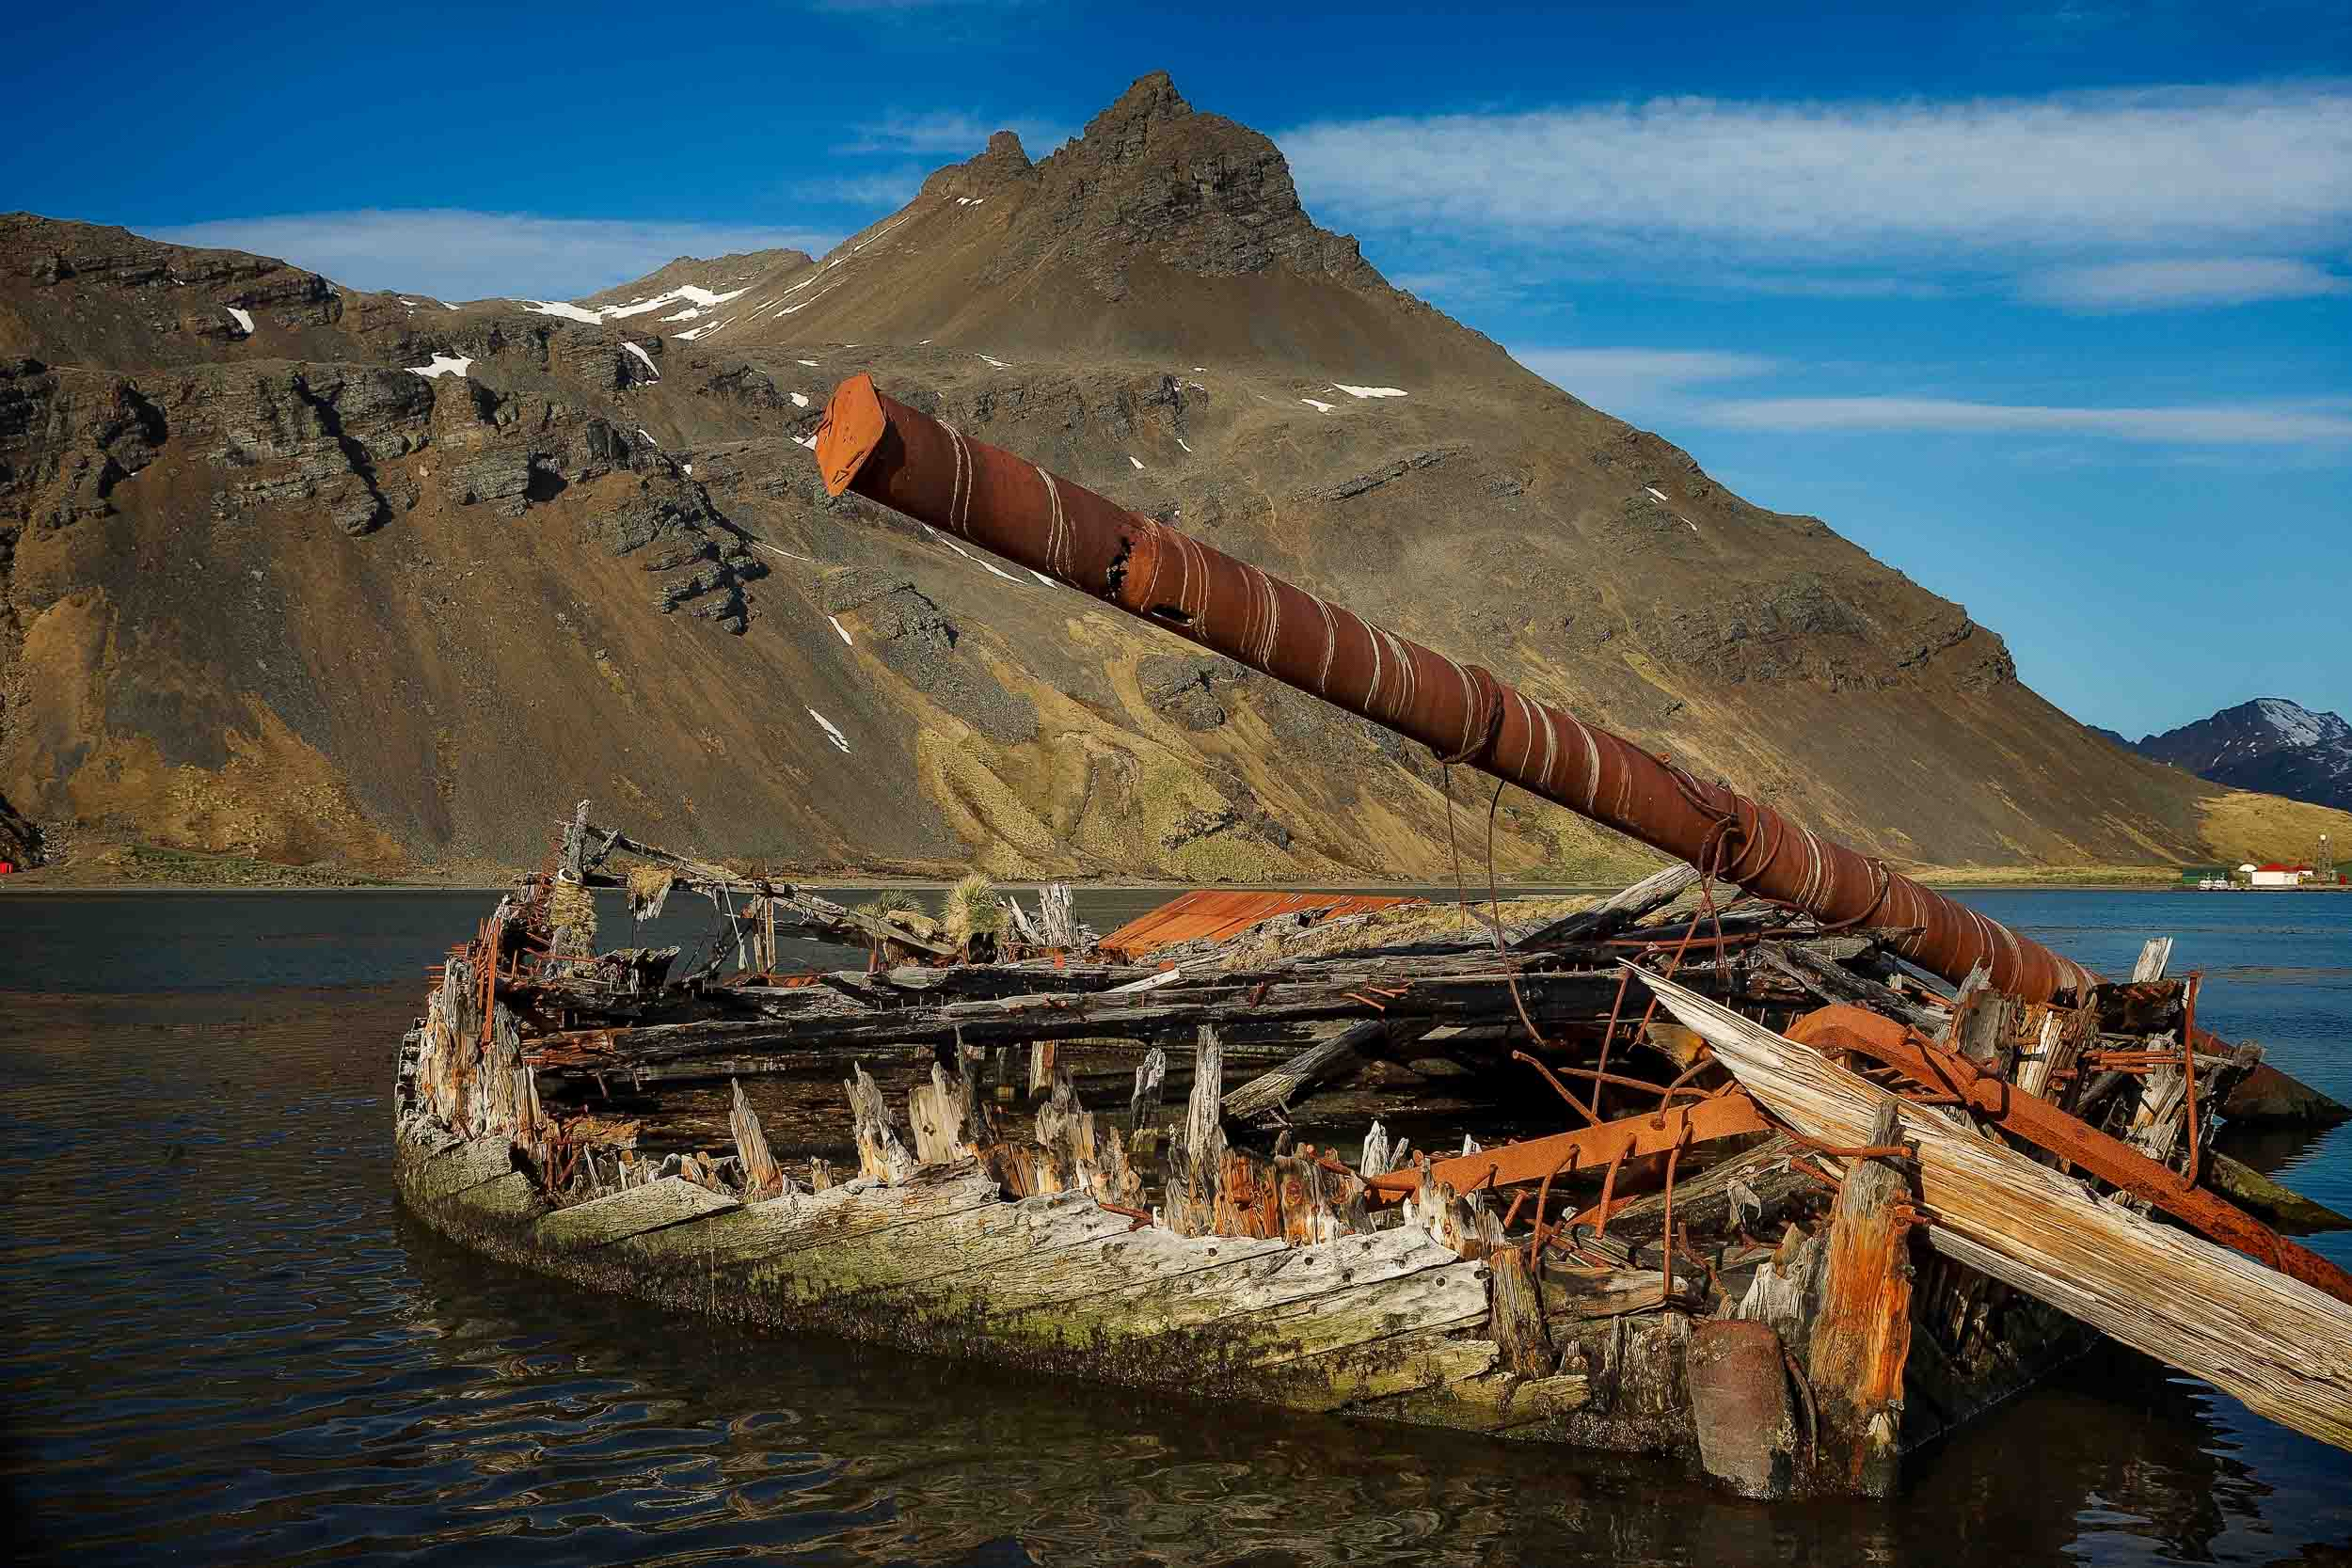 The remains of an    old boat    in the waters off    Grytviken   ,    South Georgia Island   .